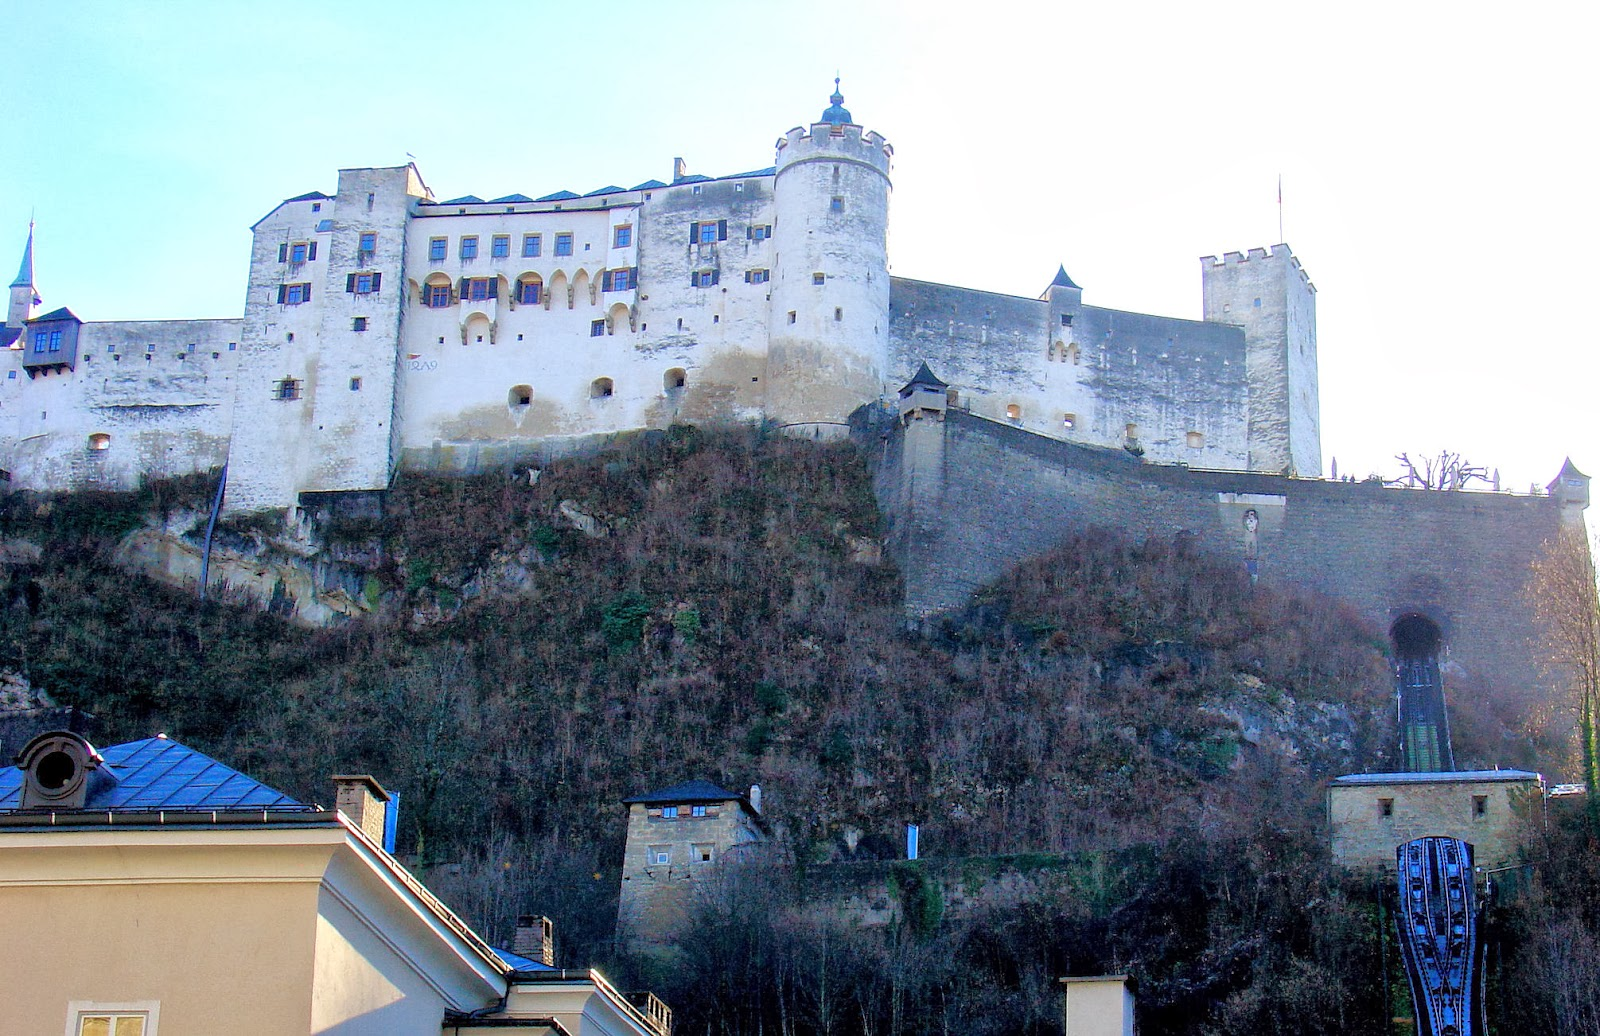 The magnificent Festung Hohensalzburg or Salzburg Castle houses three museums and can be reached via the funicular seen above and to the right of the image.